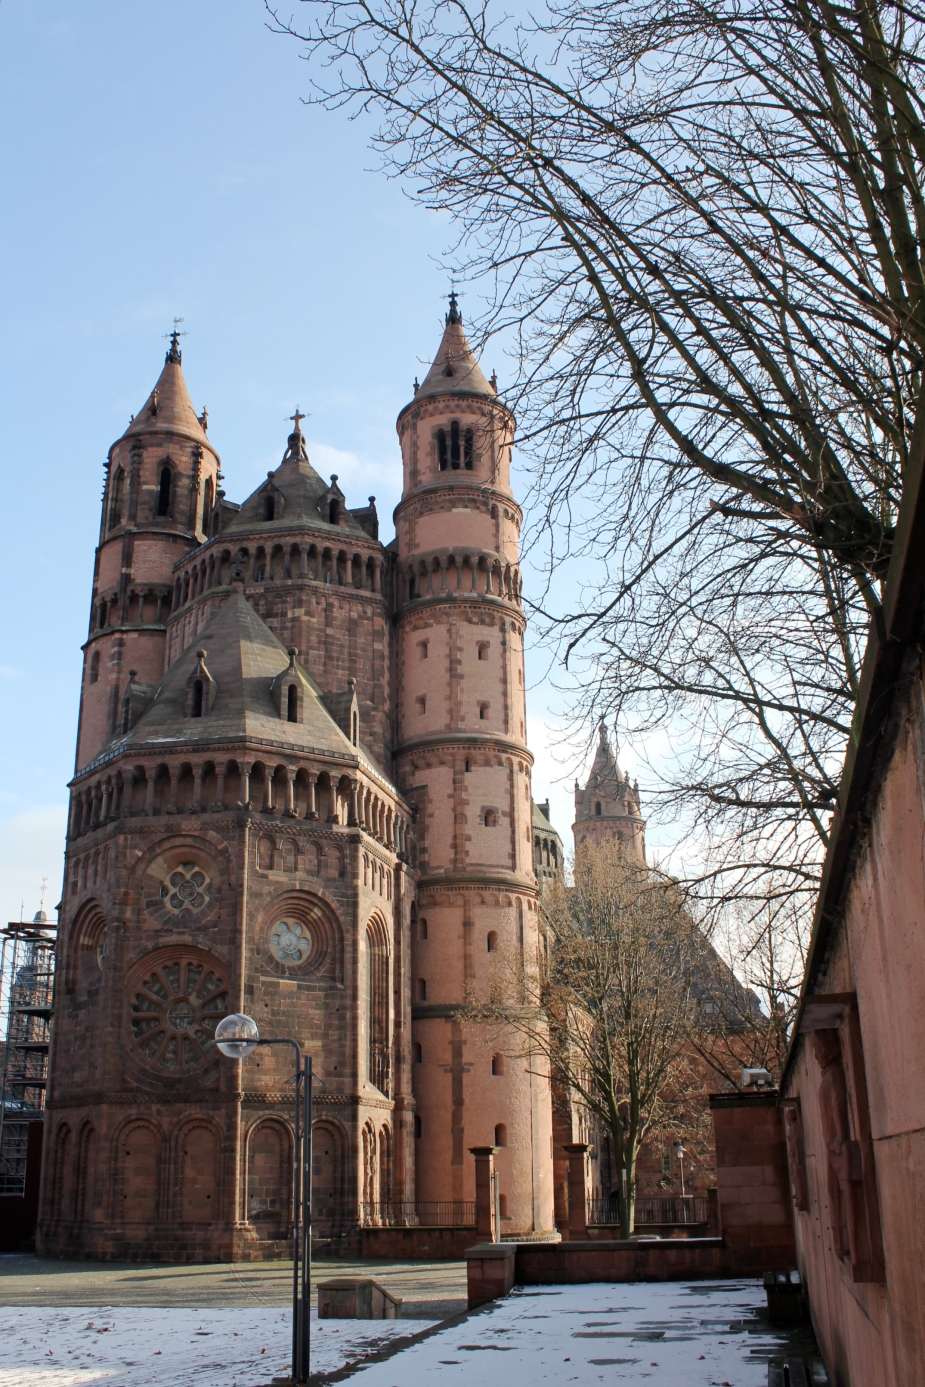 St Peters Cathedral in Worms, Germany